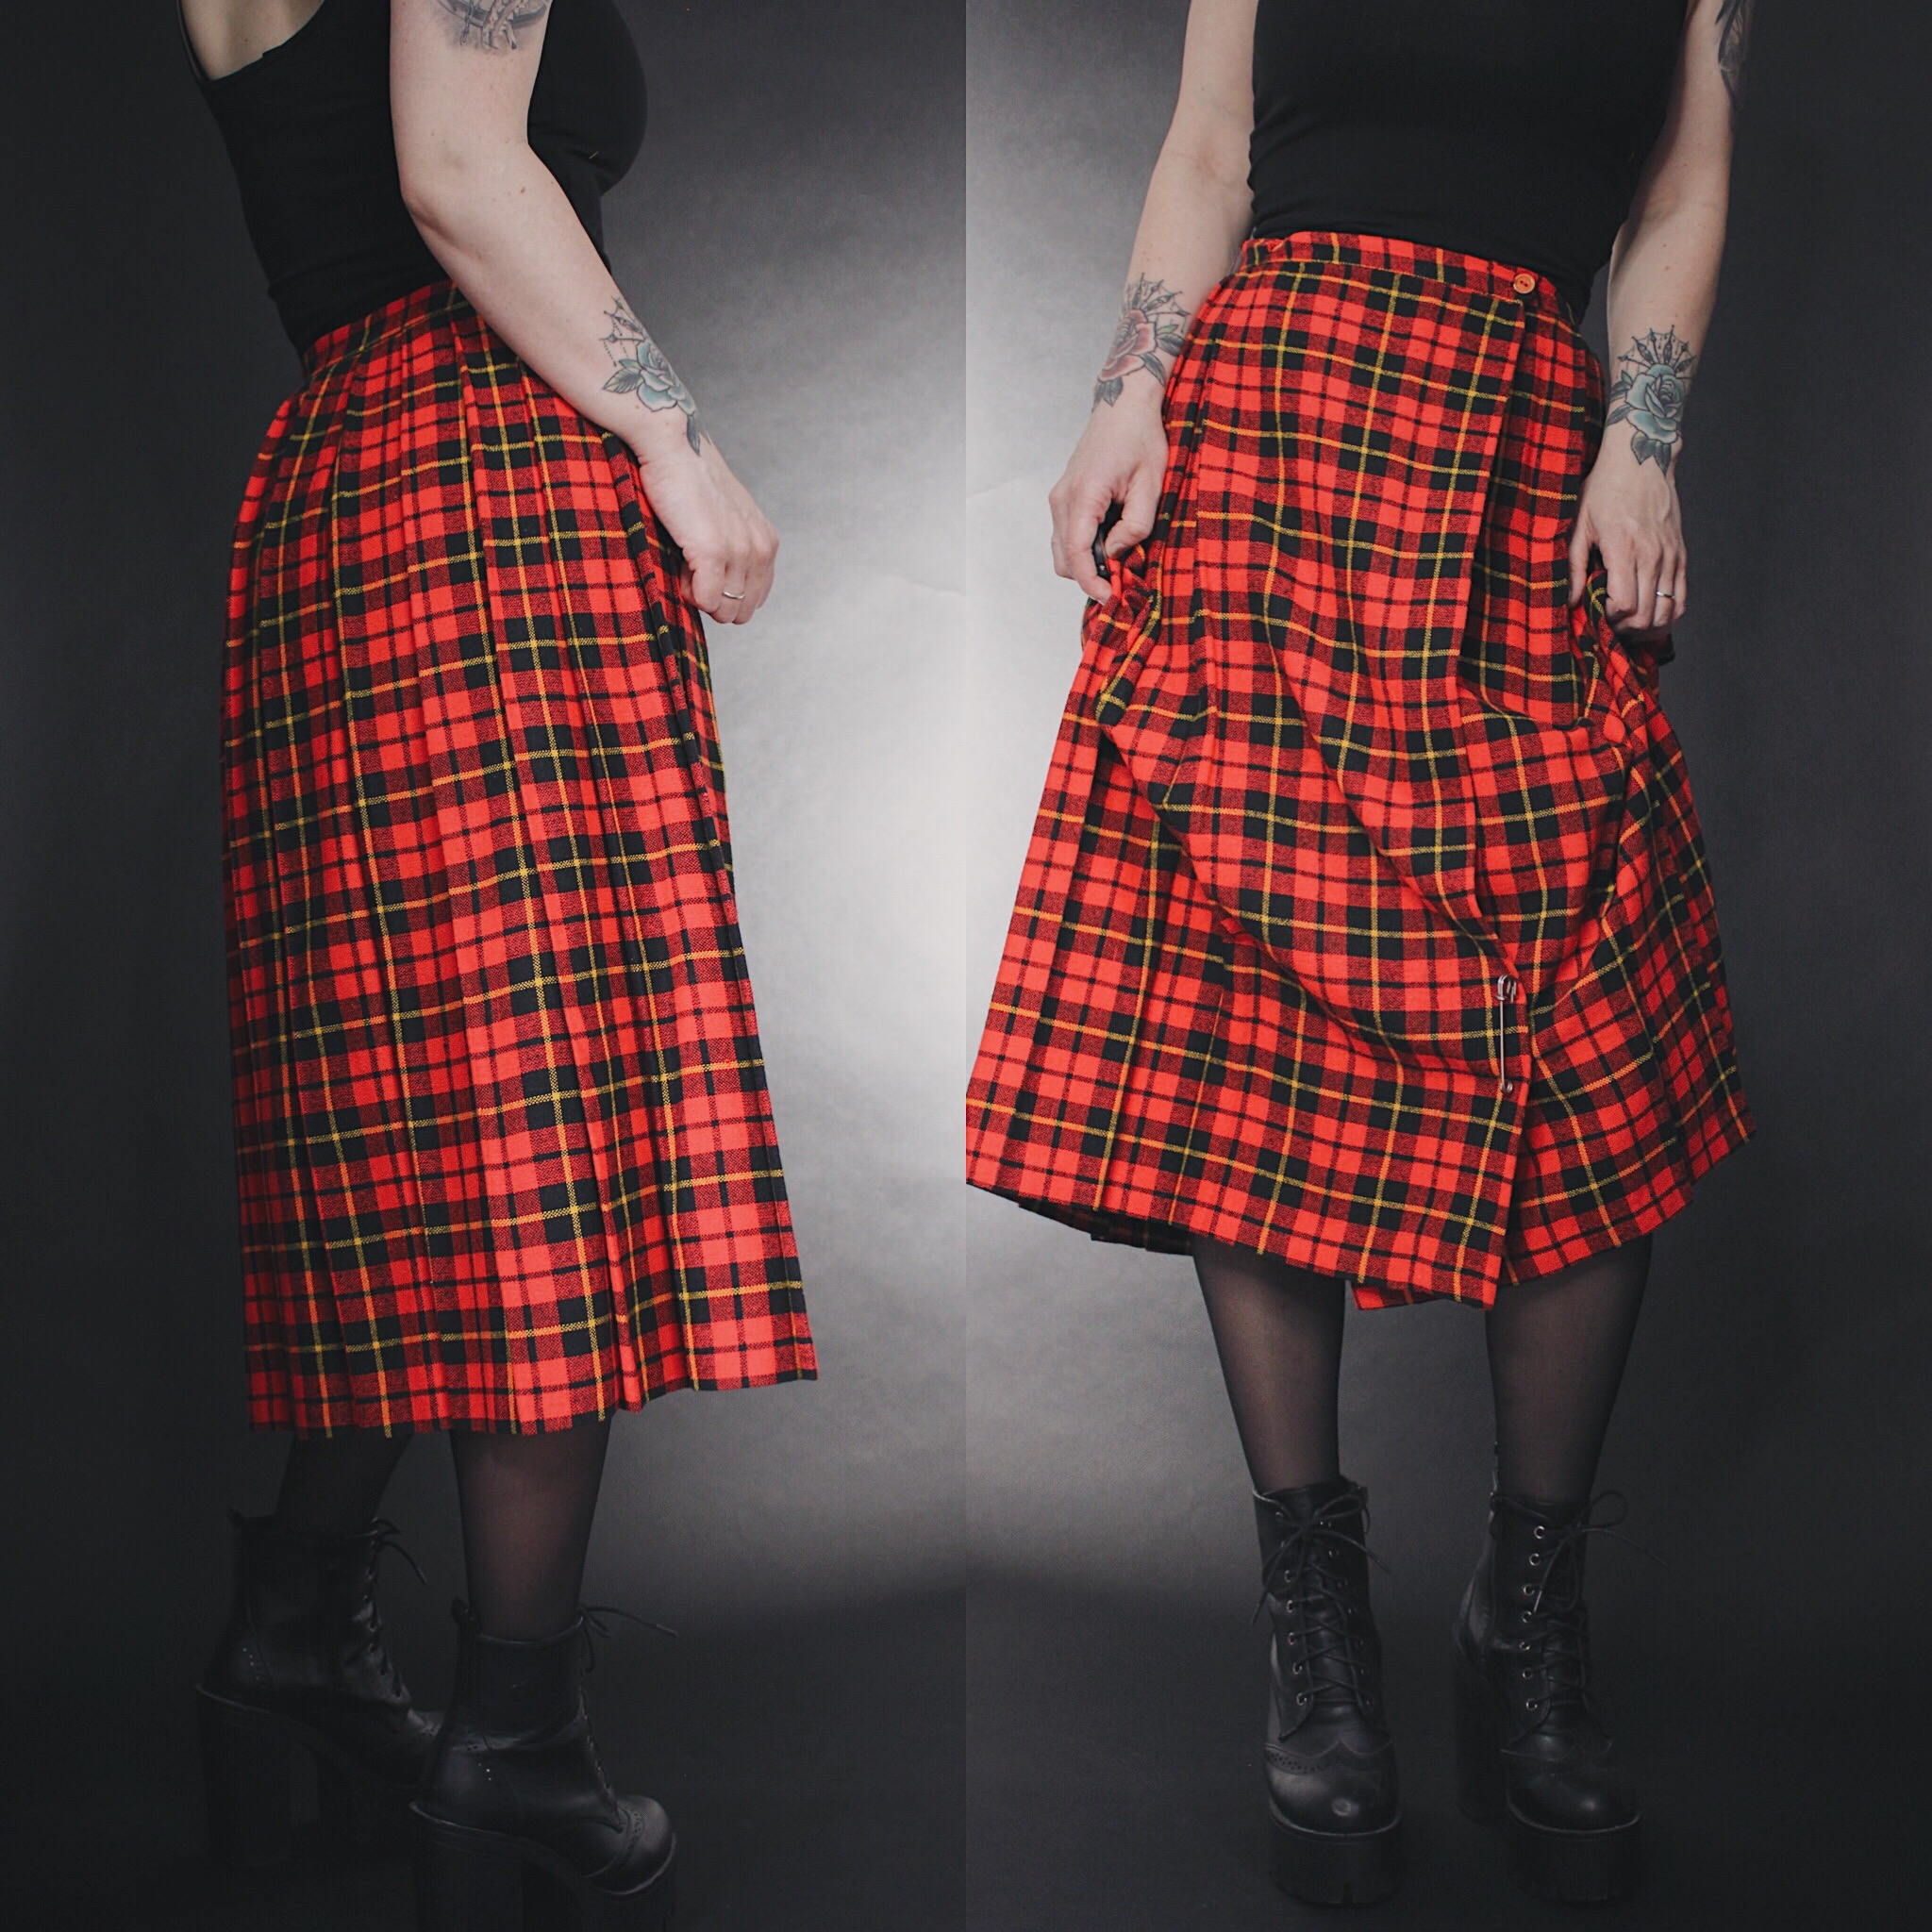 55c35f39b RESERVED FOR MAXX - Vintage 90s Red Plaid Flannel Midi Skirt - Thumbnail 1